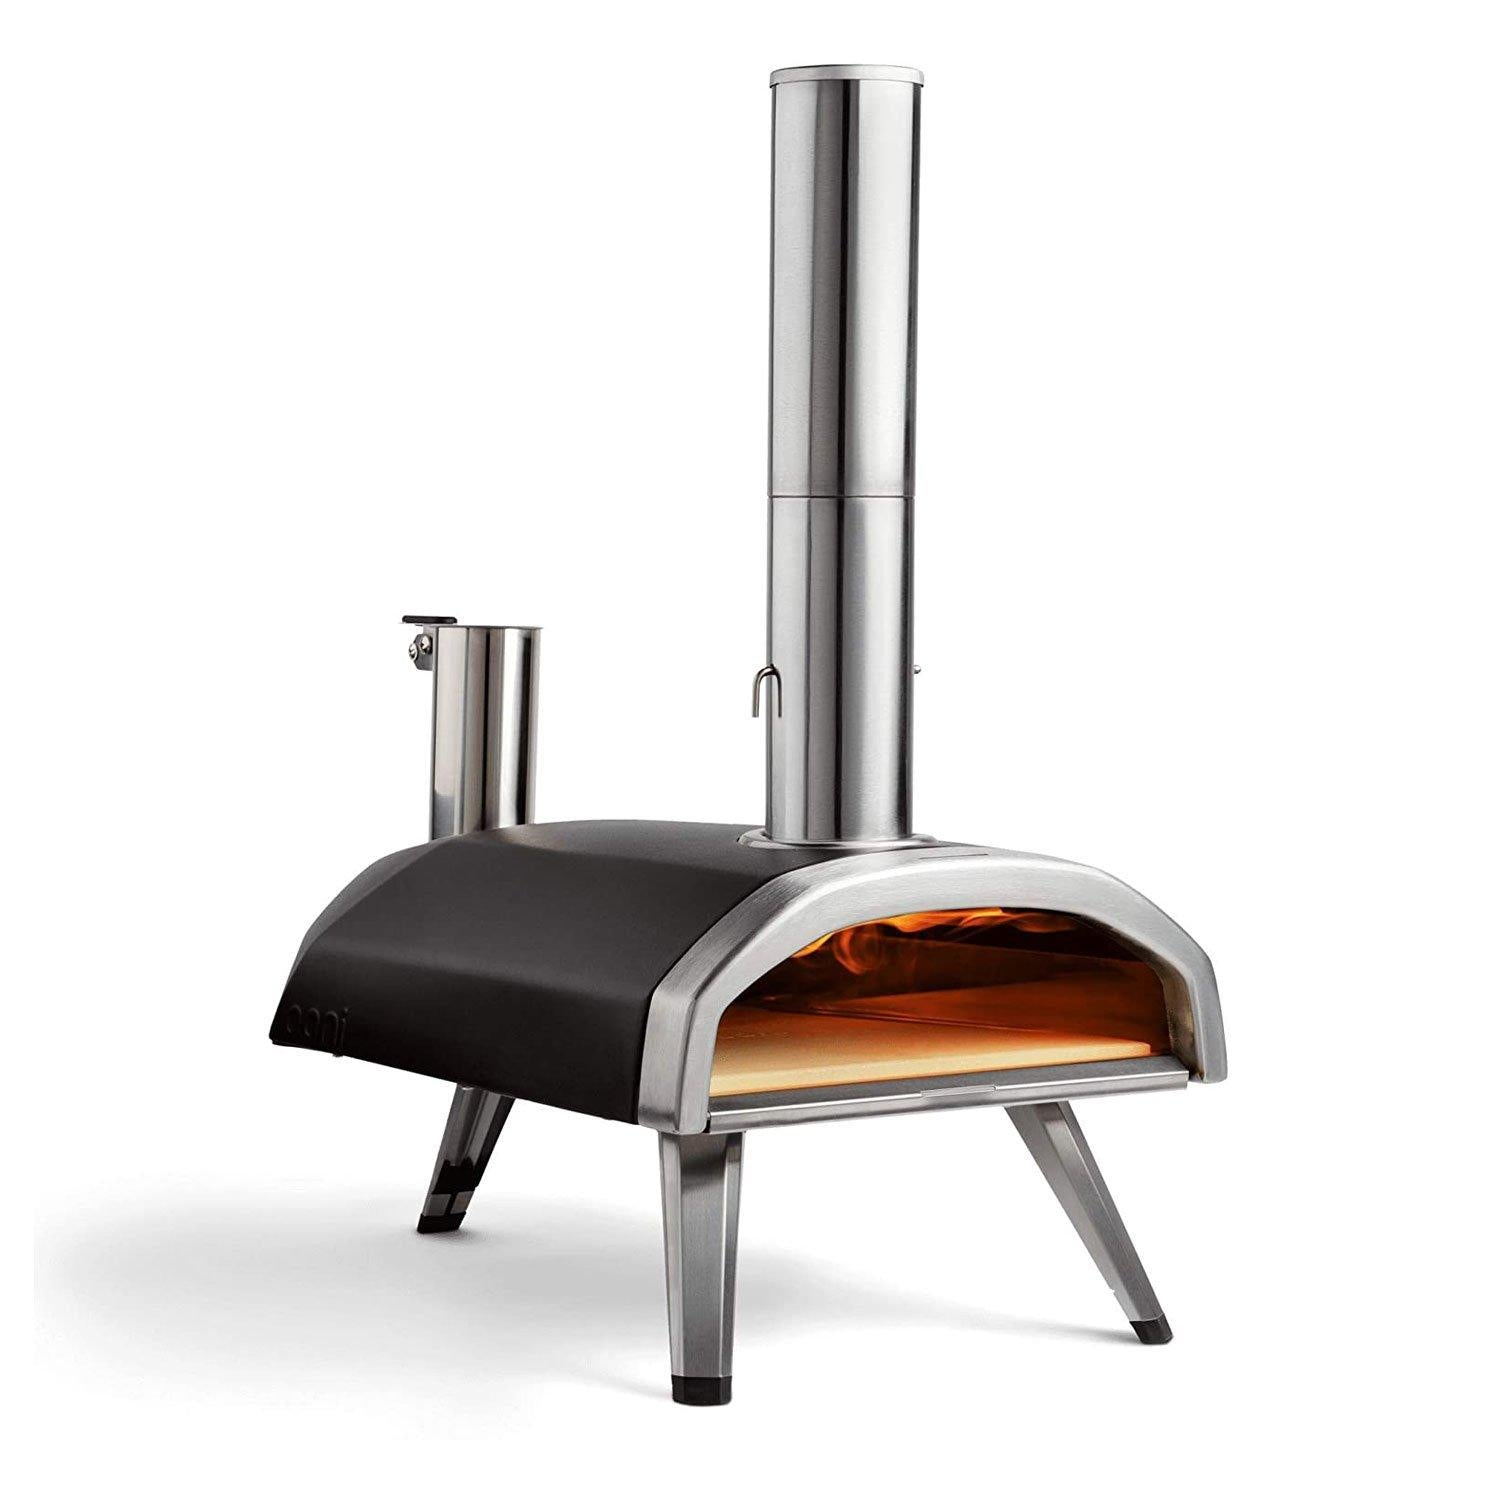 Ooni Fyra 12 Wood Fired Outdoor Pizza Oven - Hard Wood Pellet Version